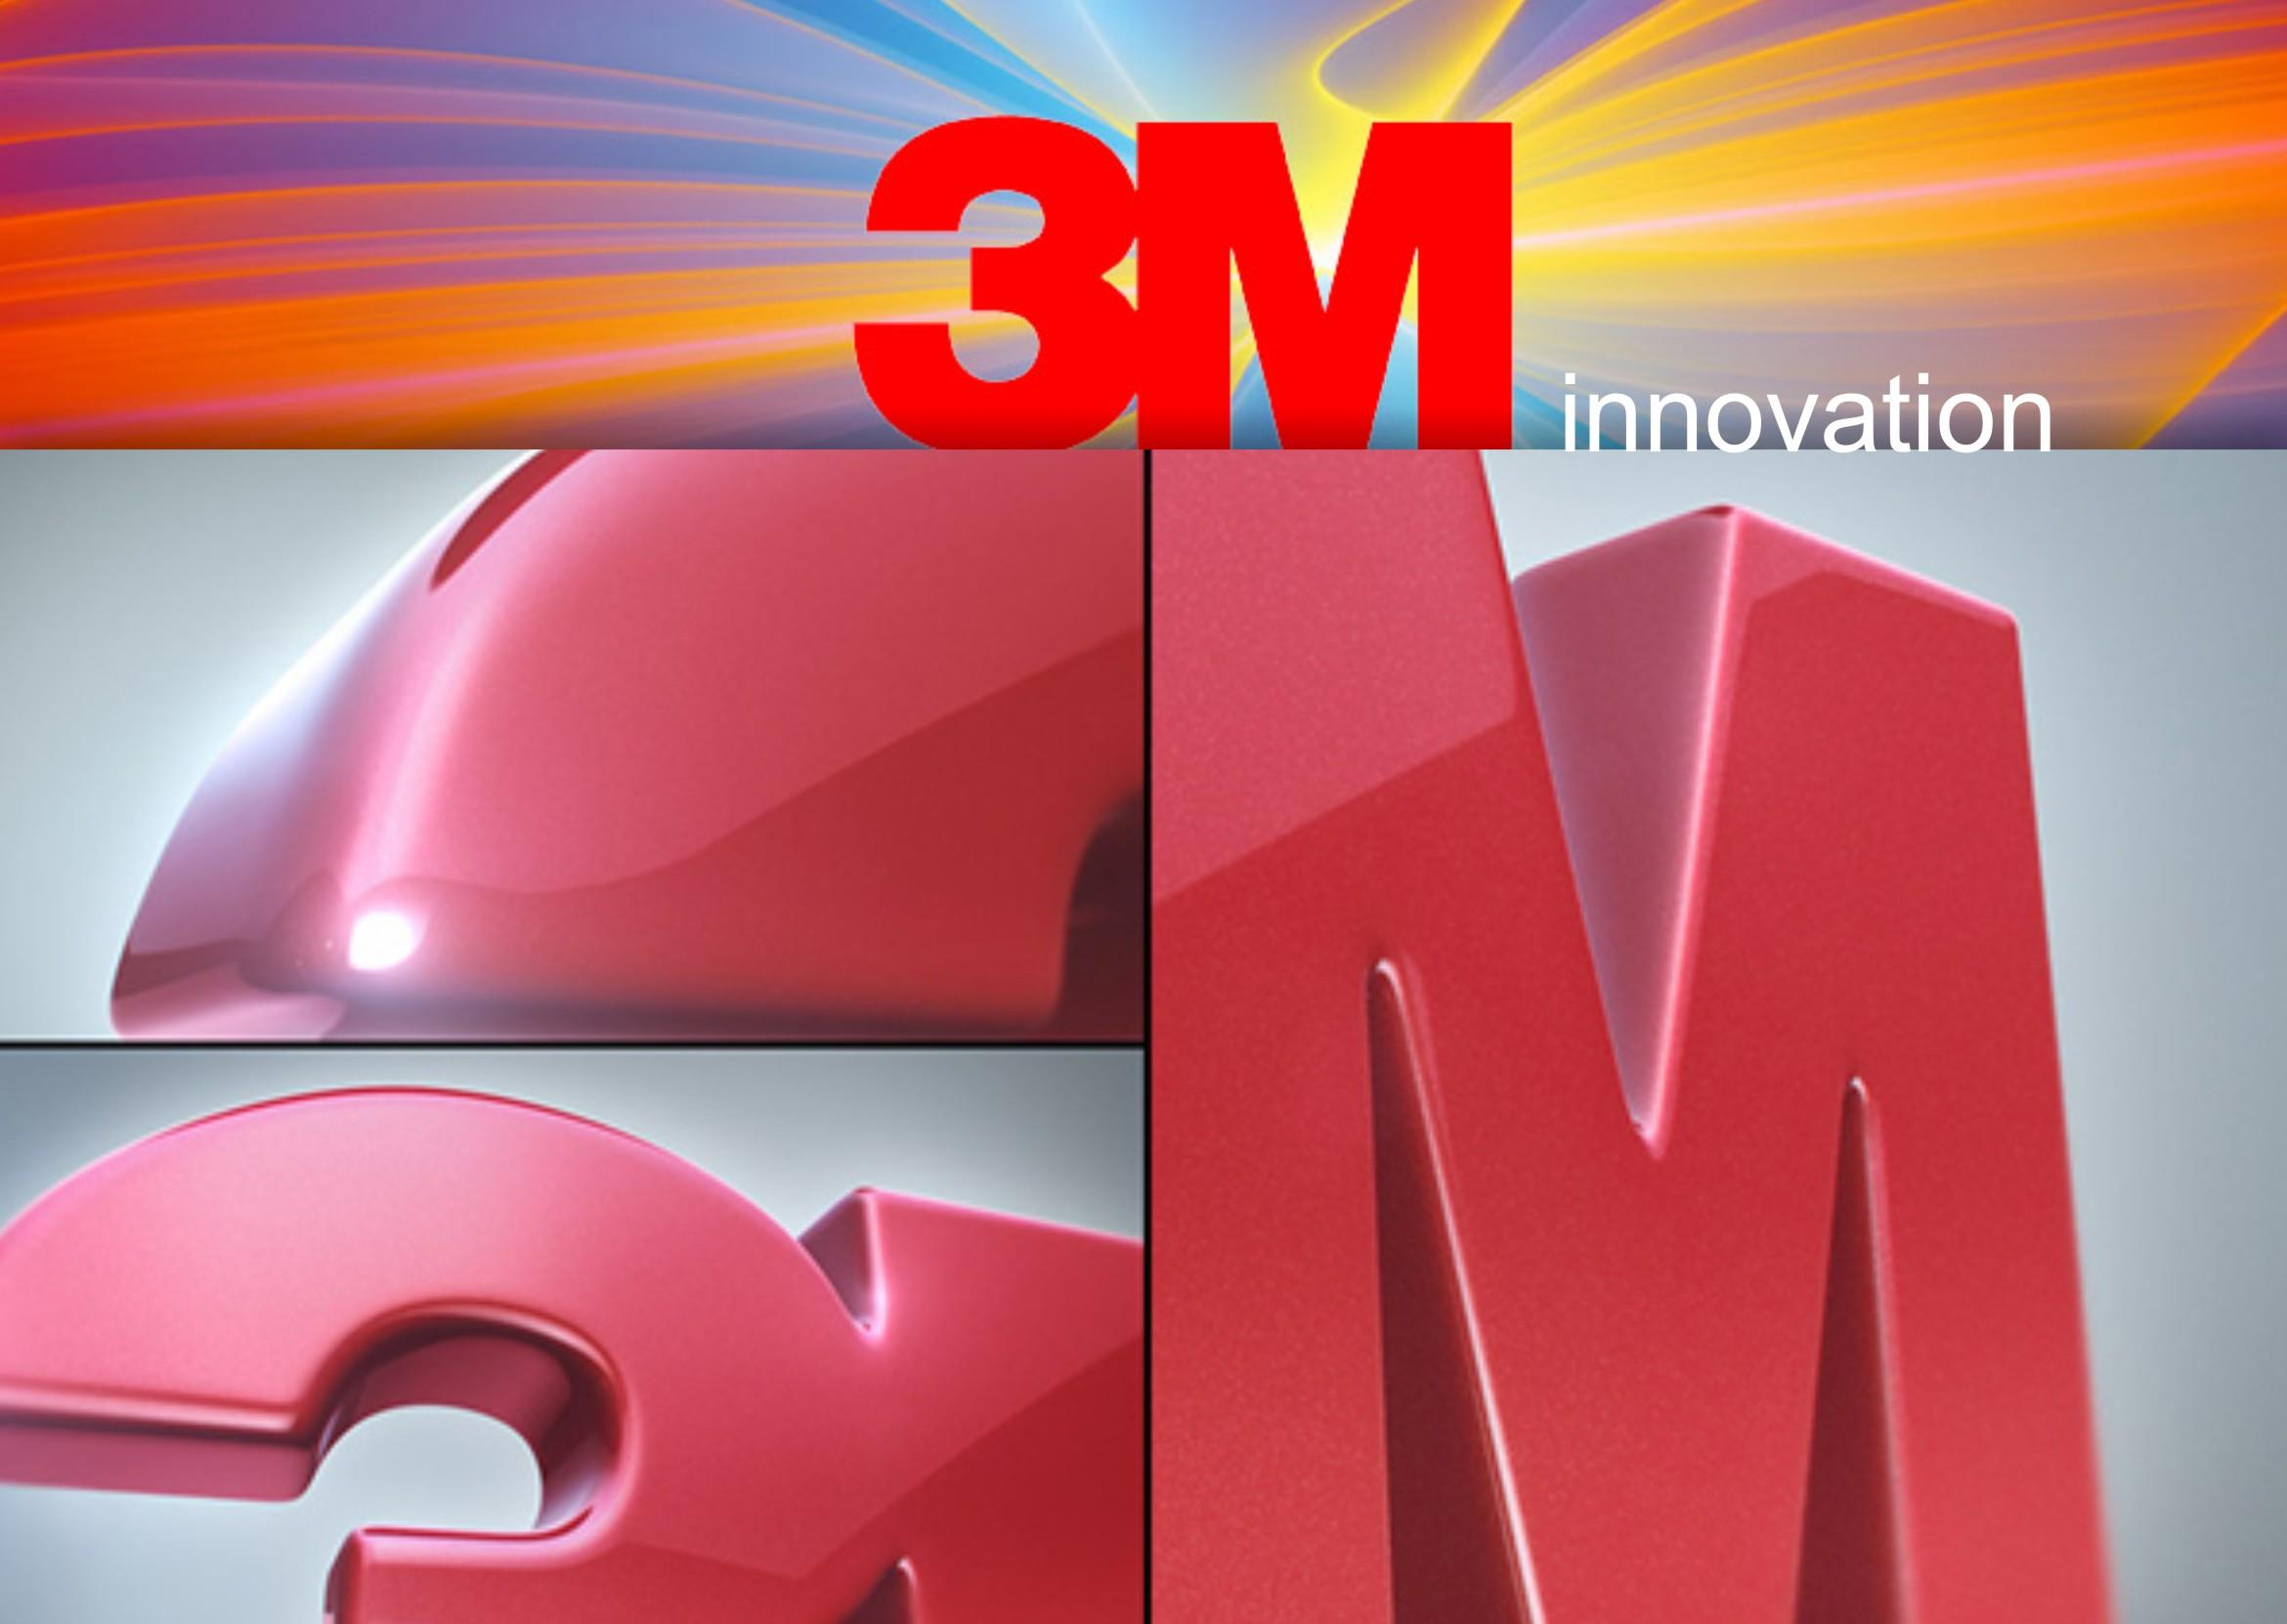 brand_body_3m_main_desktop_@2x